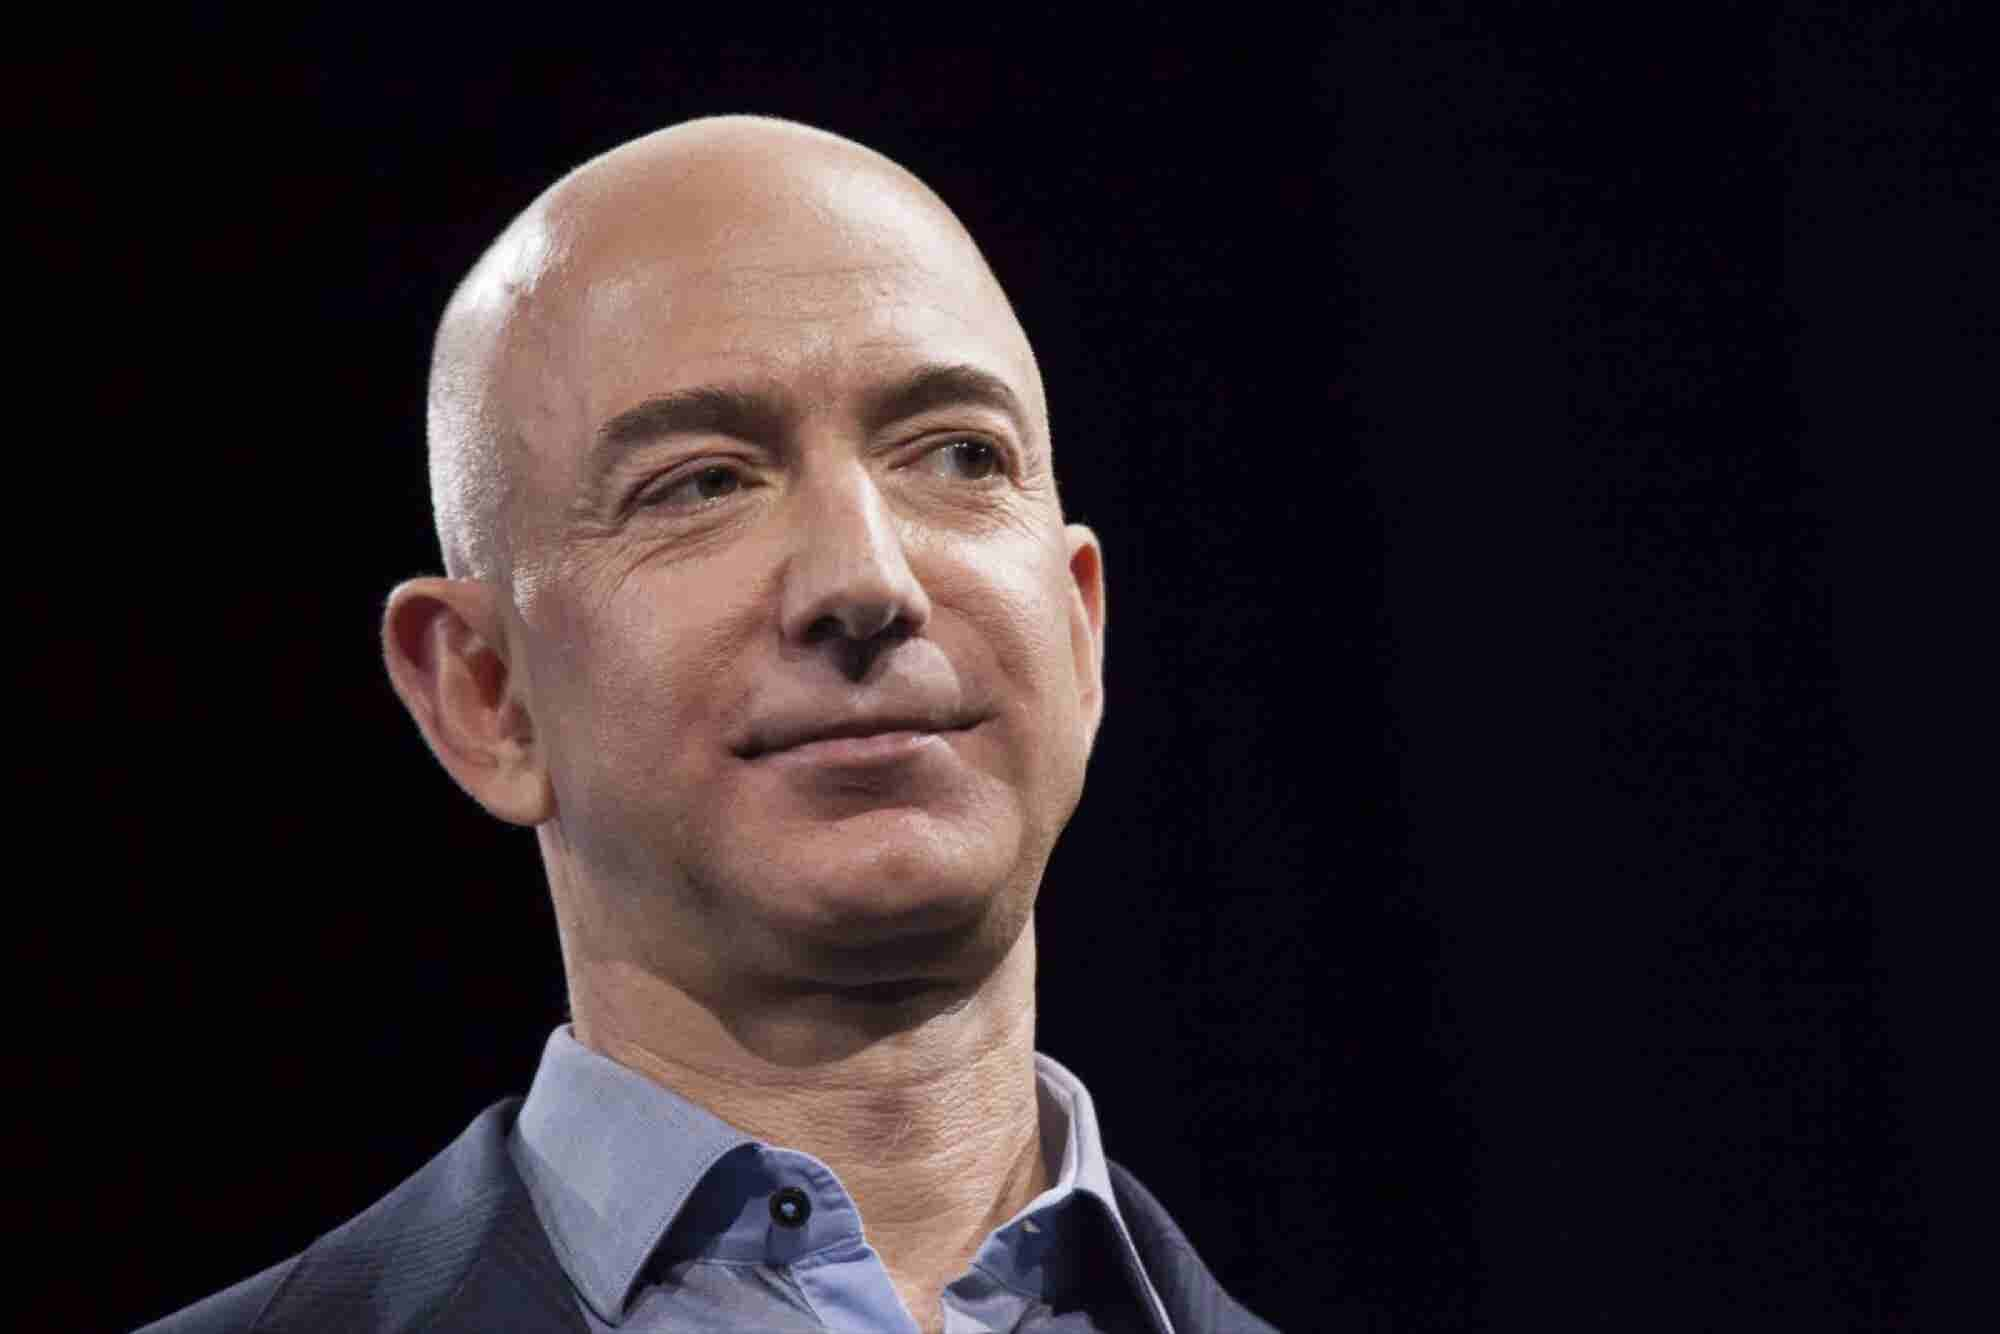 A $150 Billion Net Worth Makes Jeff Bezos the Richest Person on Earth and 26 Other Crazy Things We've Learned About the Amazon Founder